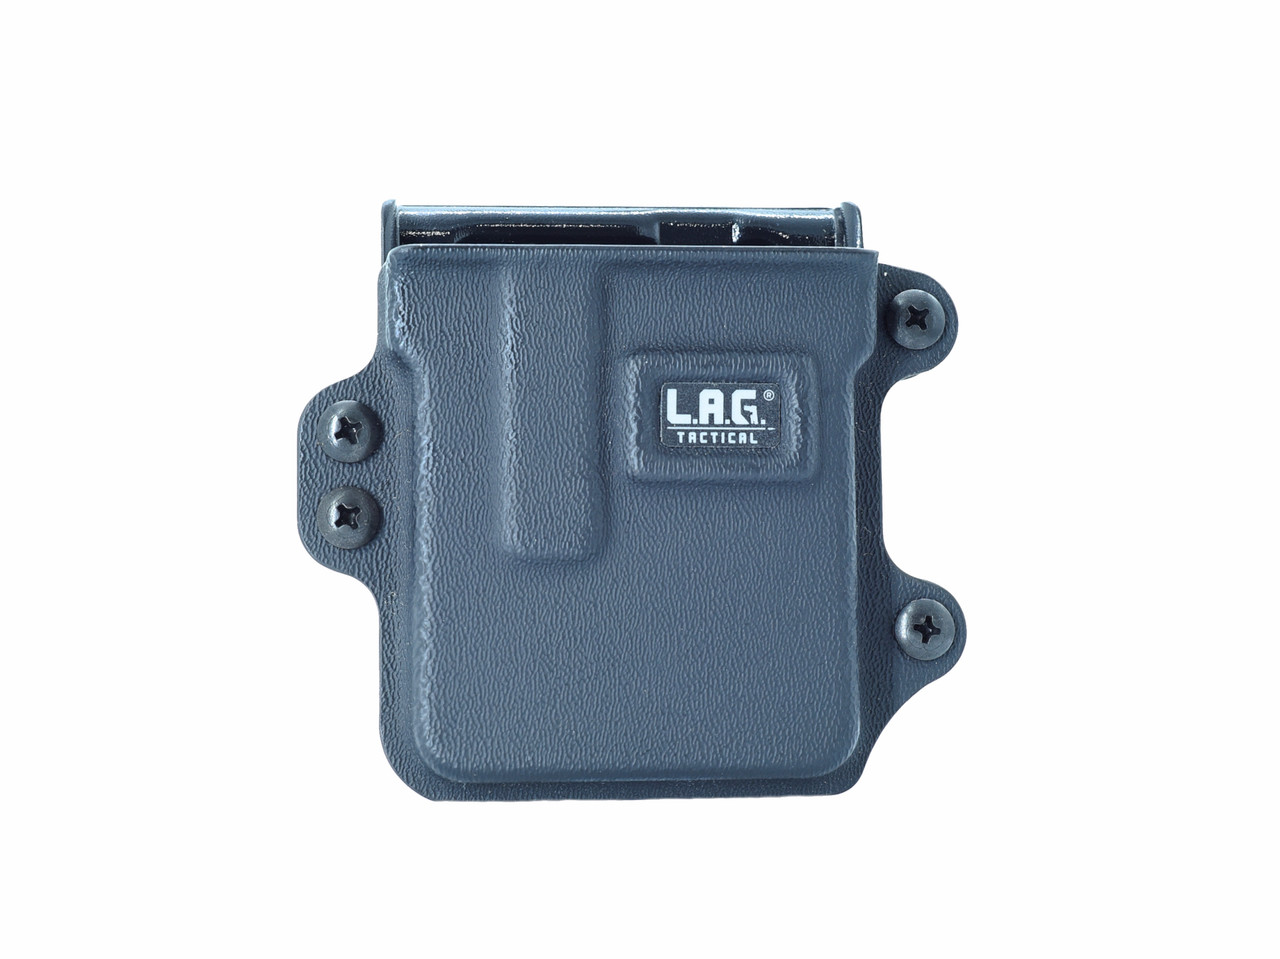 M.C.S. Rifle Mag Carrier